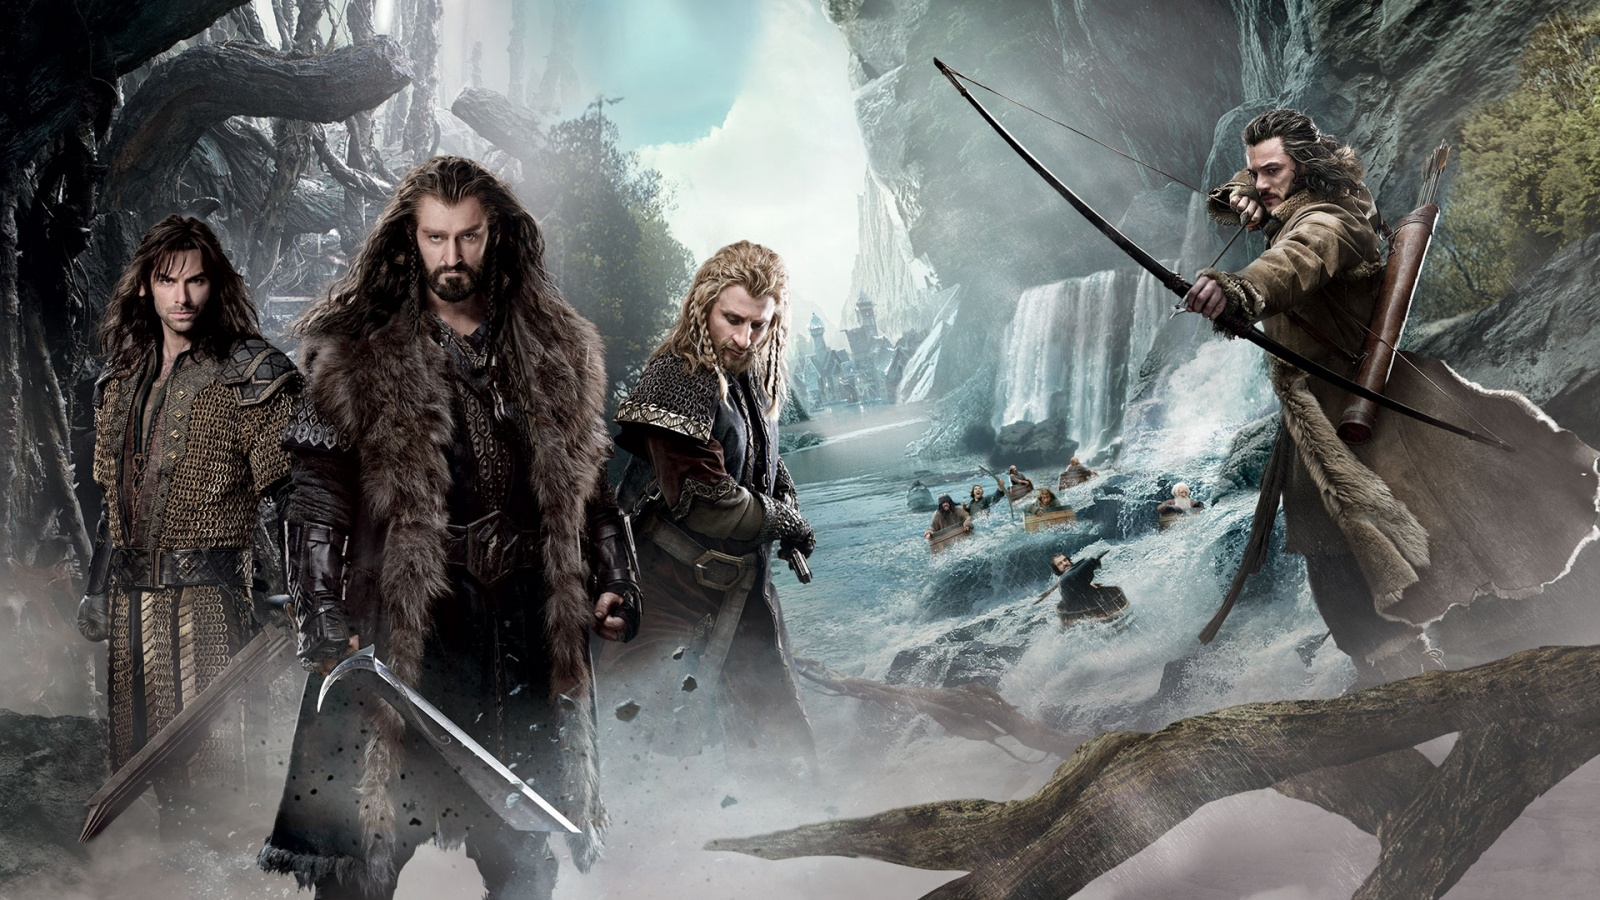 The Hobbit 2 Movie Wallpapers in jpg format for download 1600x900